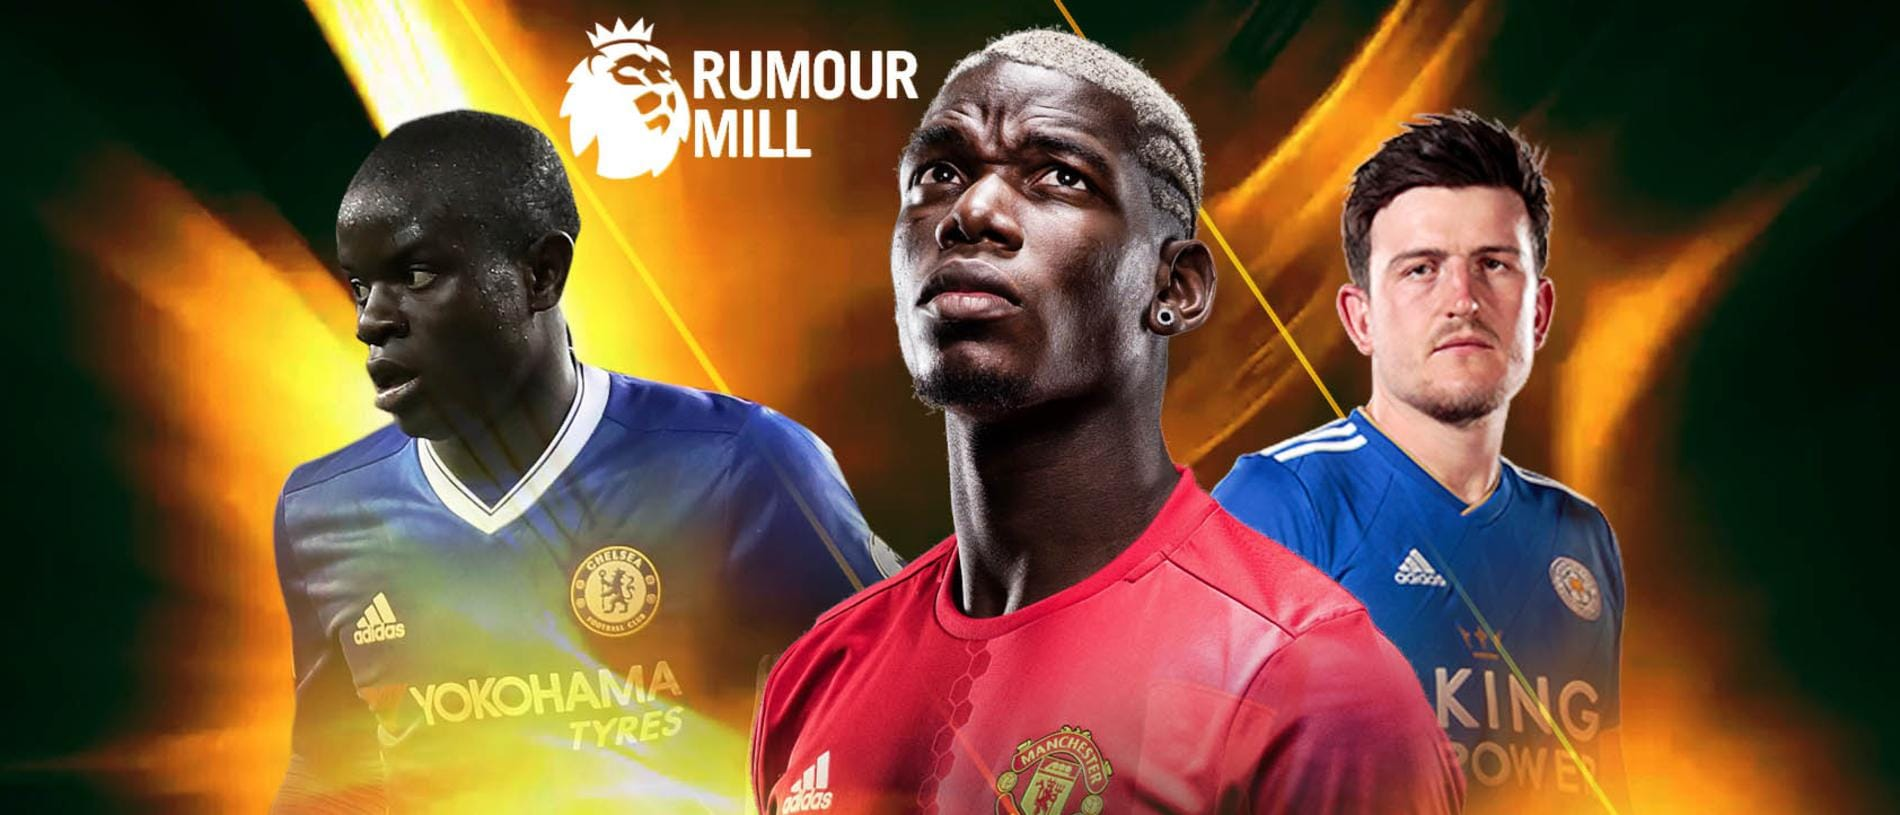 Rumour mill: Paul Pogba wants to leave Manchster United, N'Golo Kante commits to Chelsea